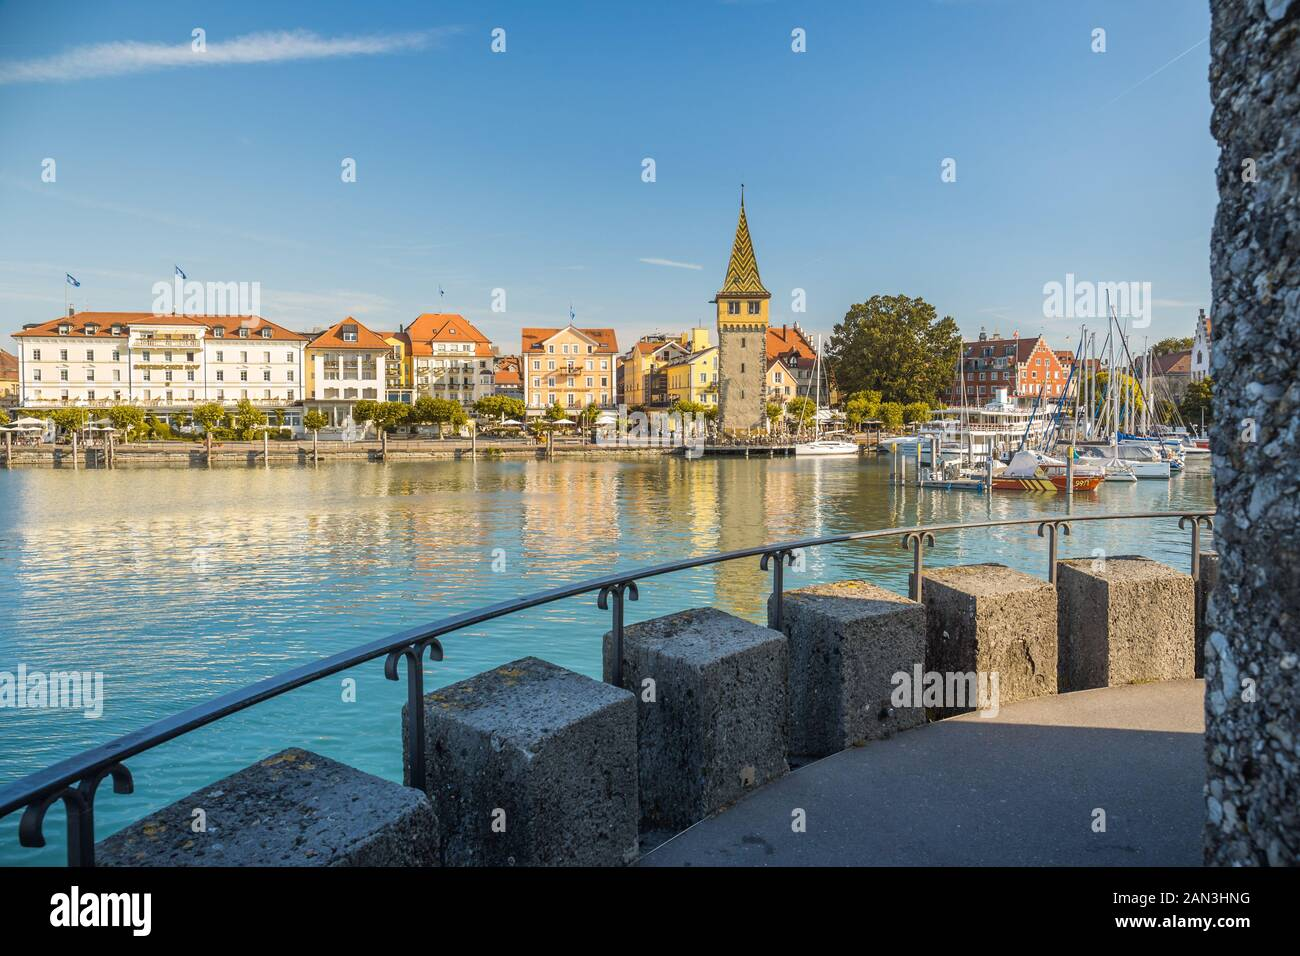 Lindau, Germany, July 2019 - View of marina and the Mangturm tower situated in the german port Lindau. Stock Photo